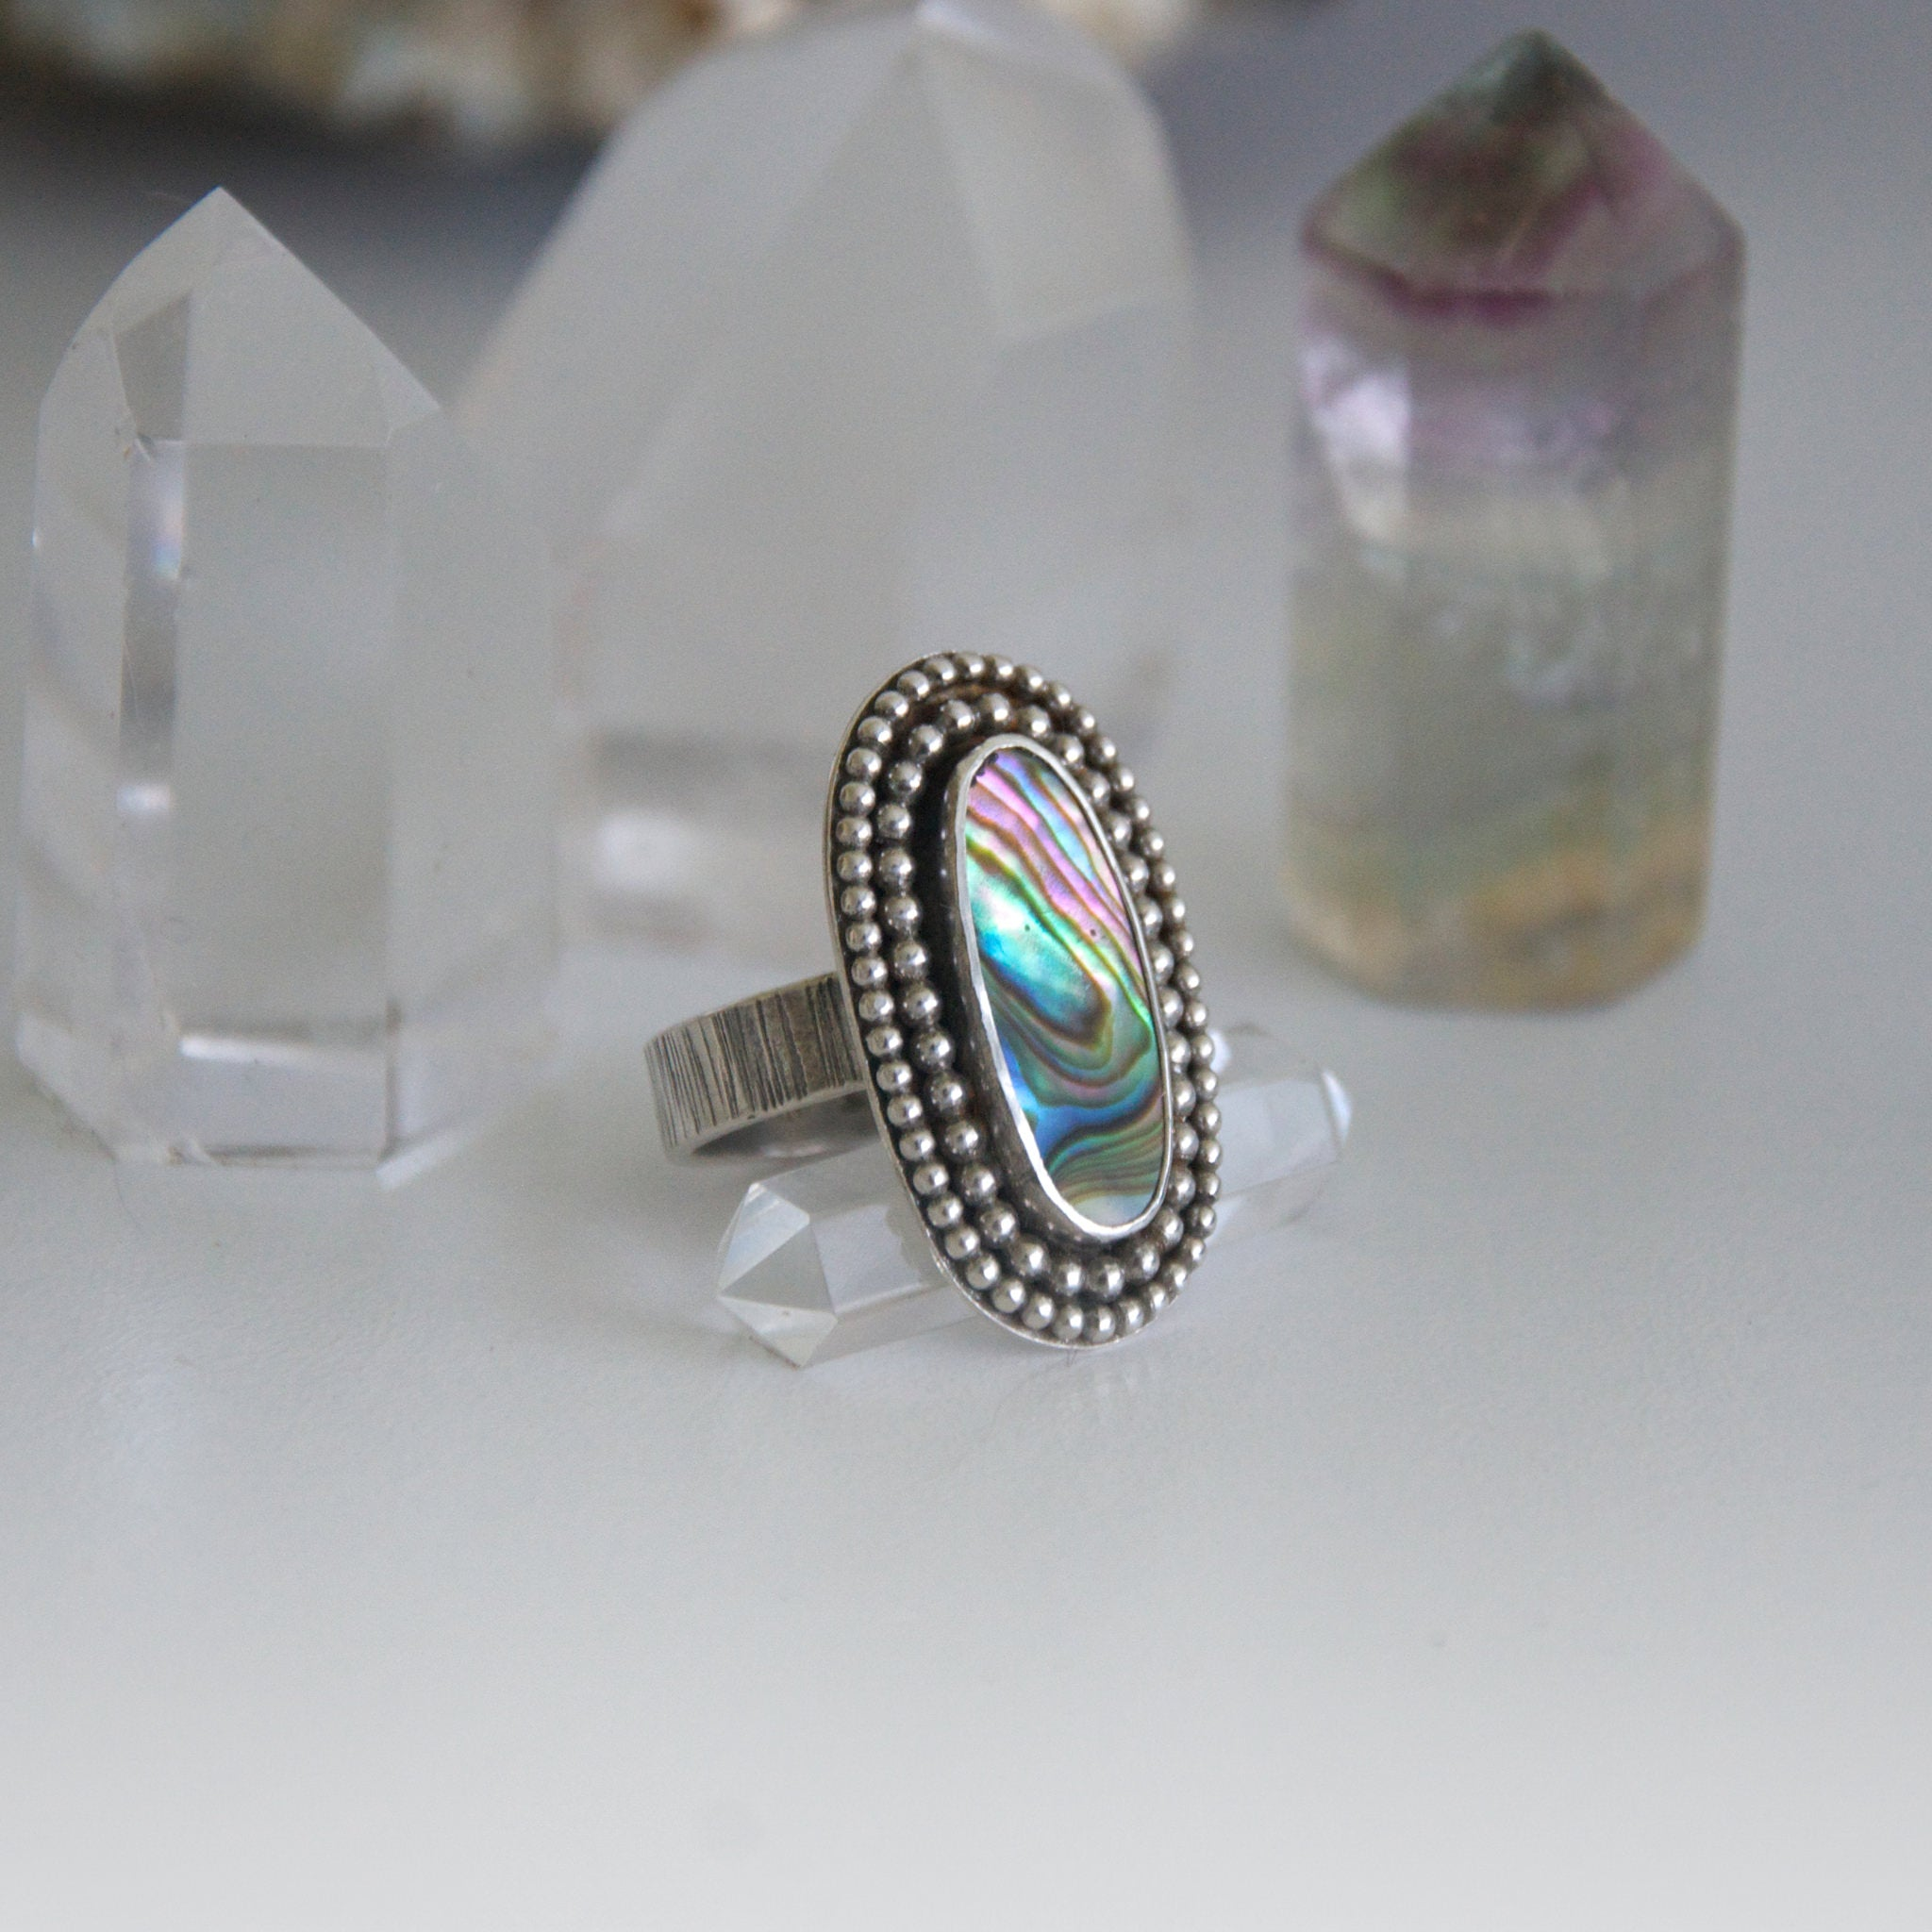 Abalone-Shell-Vessel-Ring-One-of-a-Kind-by-SpecialJCreations